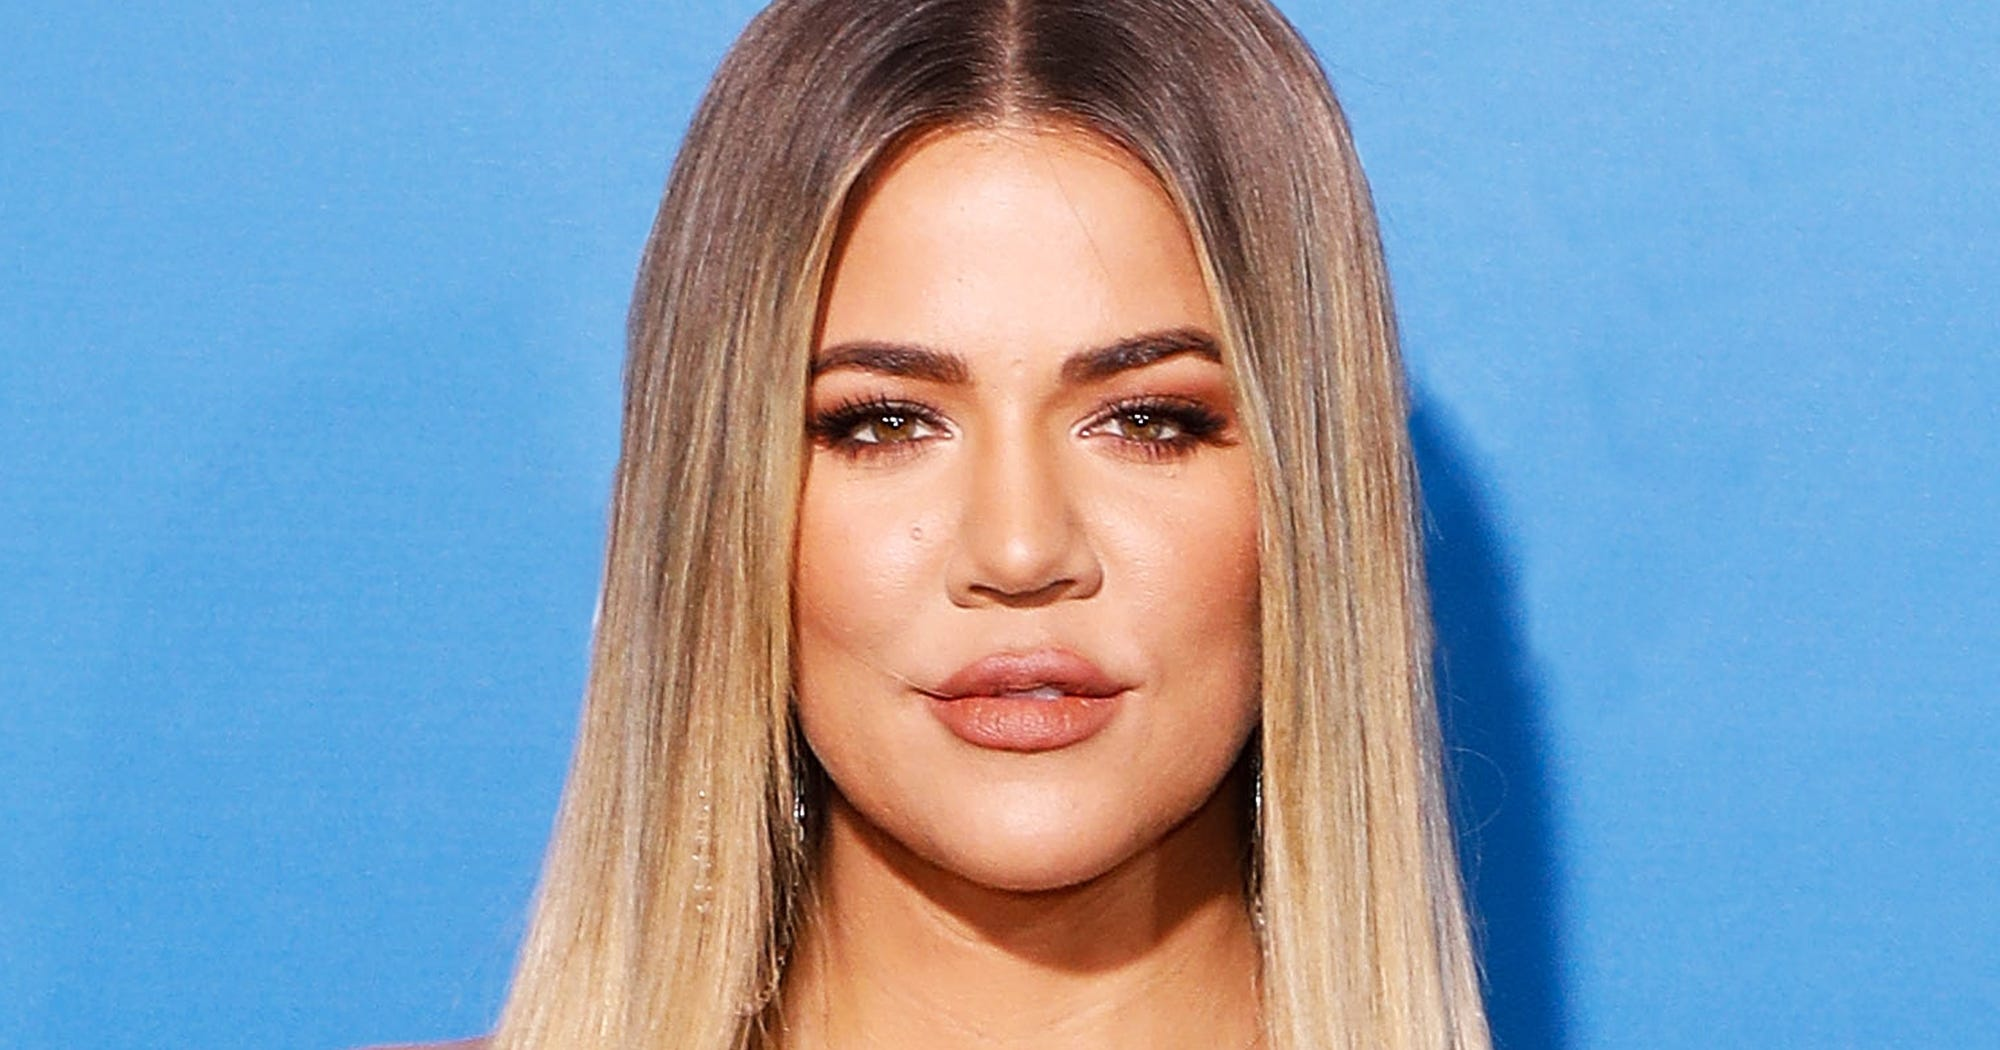 Khloé Kardashian's Labor Looks Even More Dramatic Than We Thought